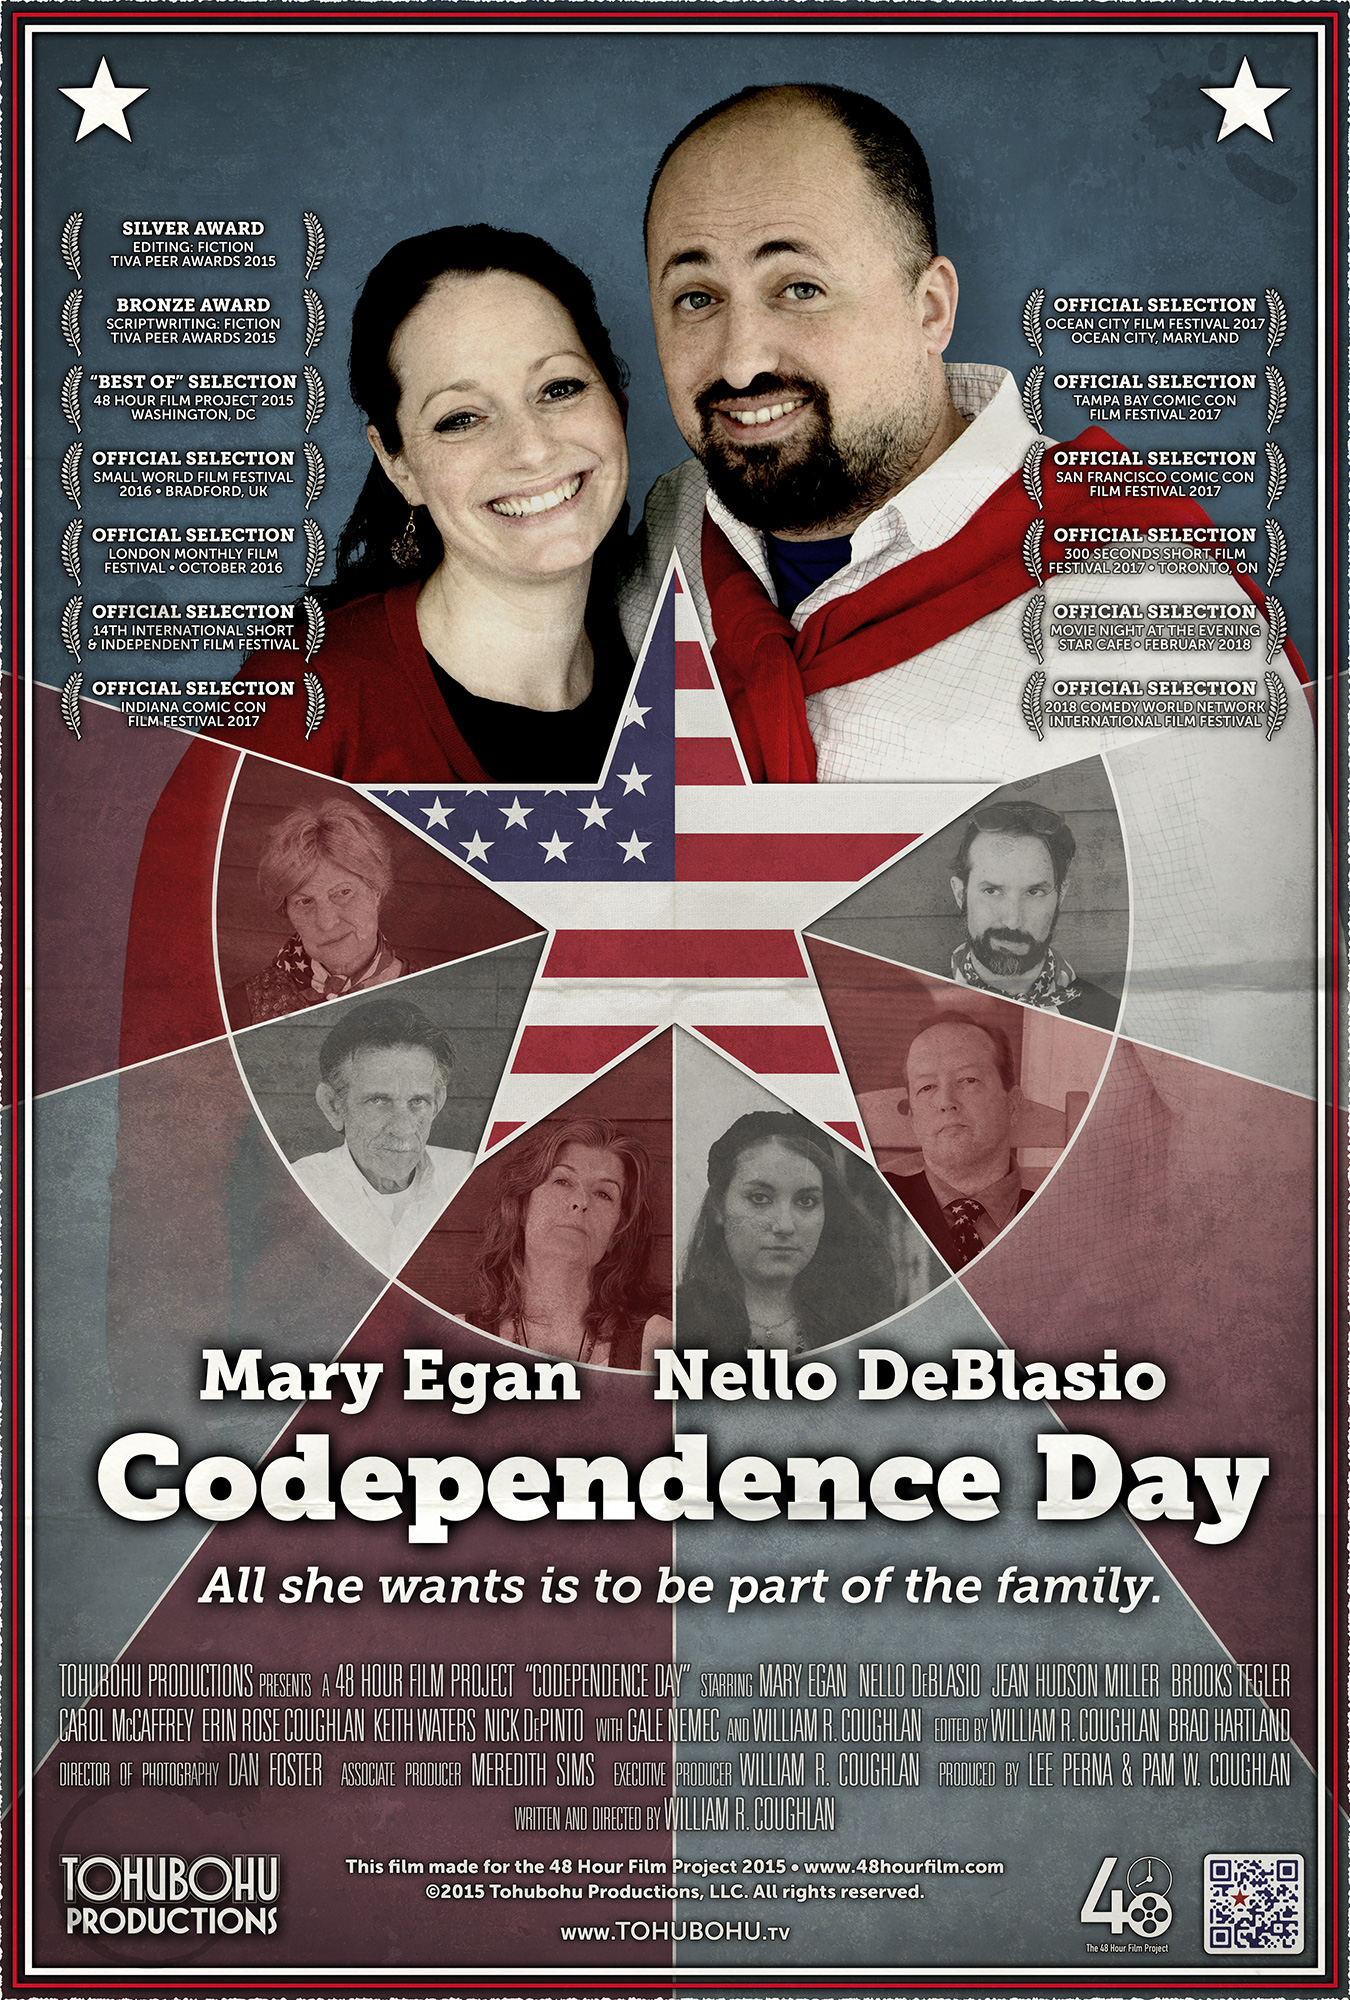 """Codependence Day - 2015 · 5:00 · produced by Lee Perna & Pam W. Coughlan · Written and directed by William R. CoughlanEmily is nervous about meeting her husband Wilson's family for the first time at their annual Independence Day gathering. Having eloped, she is concerned that the family will never accept her as one of their own. But Wilson has a plan to bring her into the fold — competing in the family's annual (if ridiculous) tradition of throwing balls at a target object, a barely-recognizable variation of bocce.After producing only one short film each year in 2013 and 2014, Tohubohu returned to the 48 Hour Film Project with a vengeance in 2015 with """"Codependence Day"""" — an offbeat interpretation of the traditional """"holiday film."""" The film was created entirely between May 1st through the 3rd, 2015, and premiered at the AFI Silver Theatre on Friday, May 8th."""